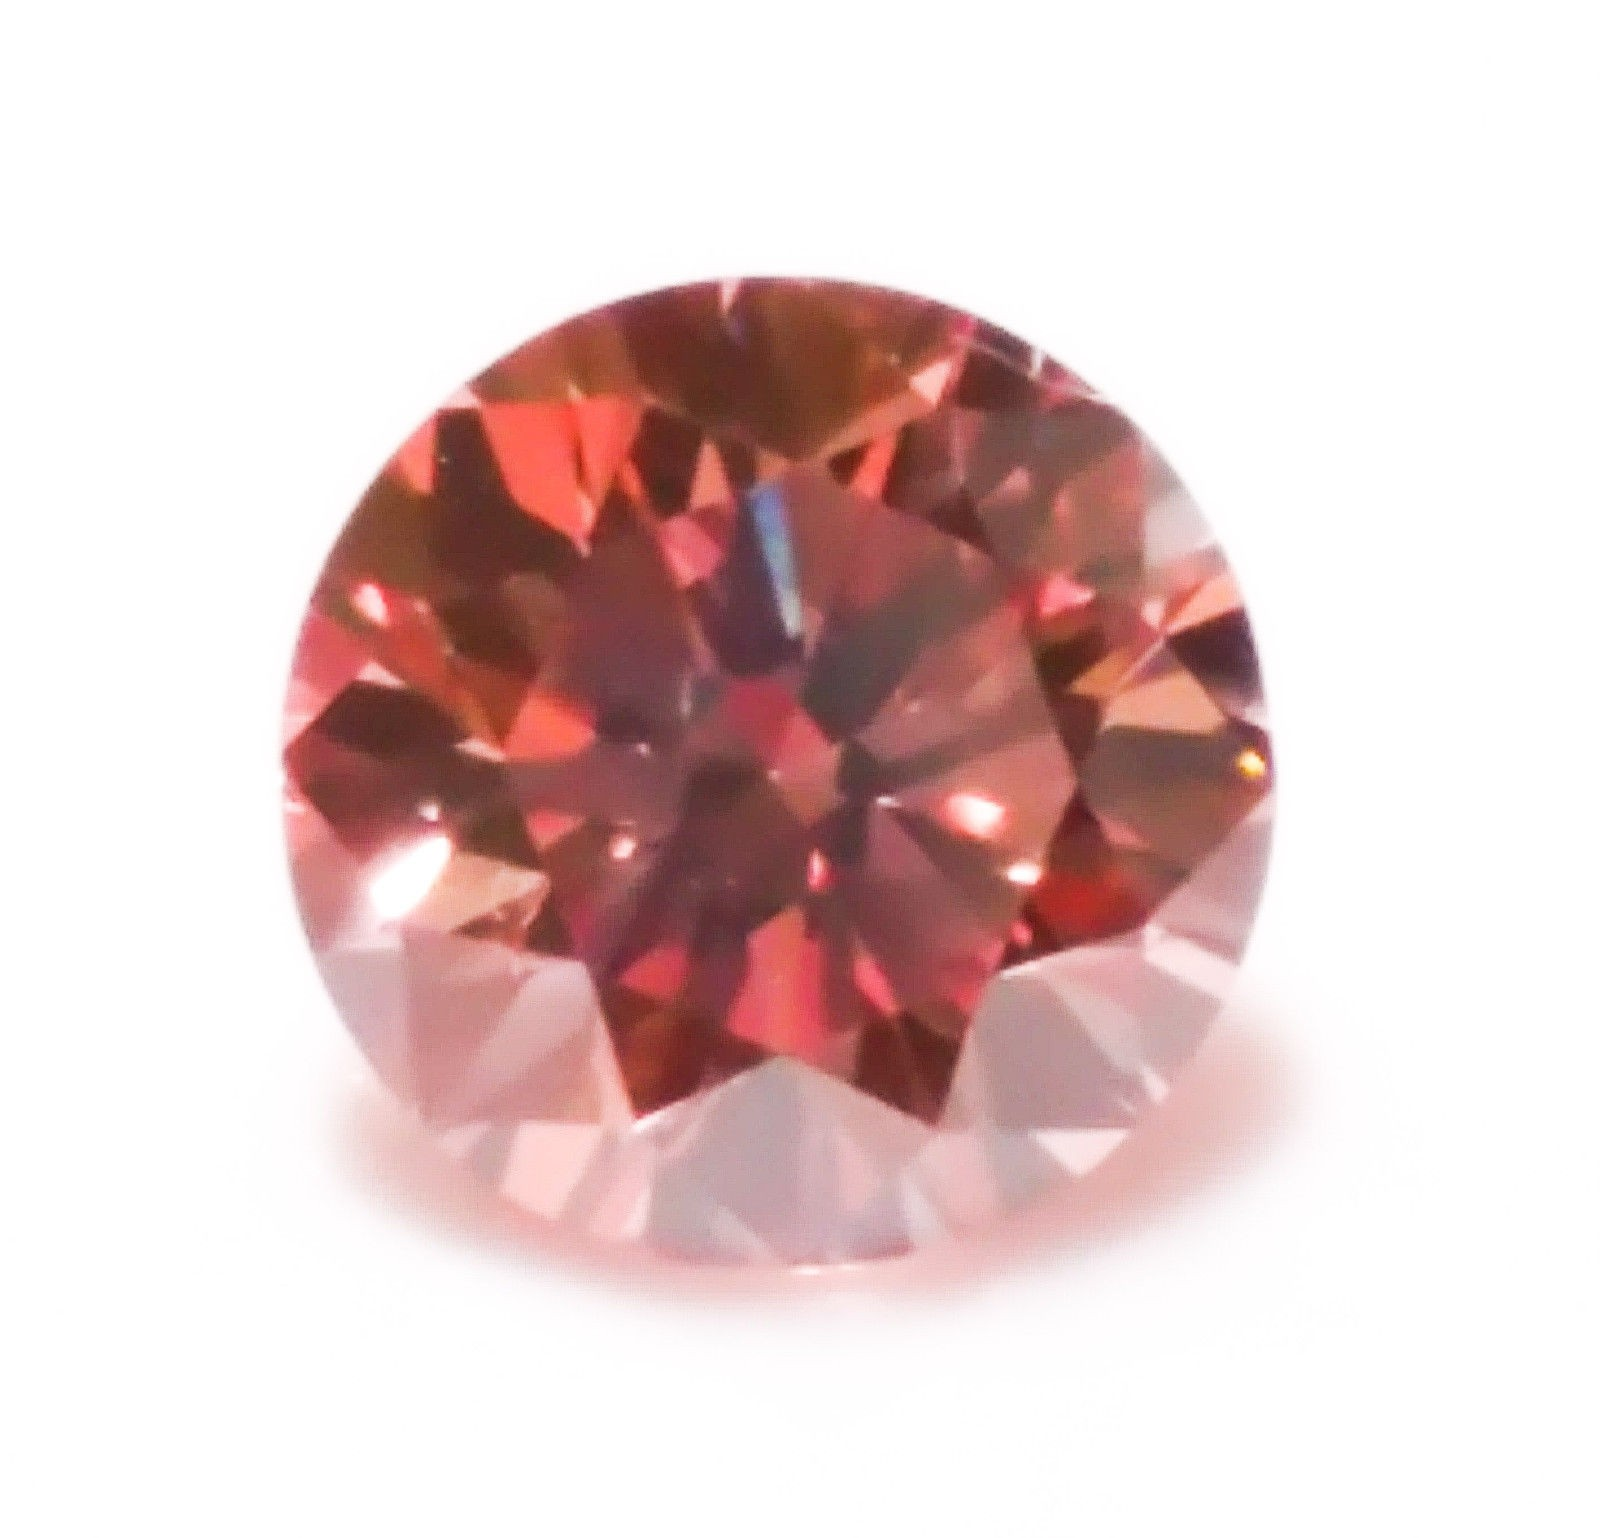 Argyle Pink Diamond Rings For Sale